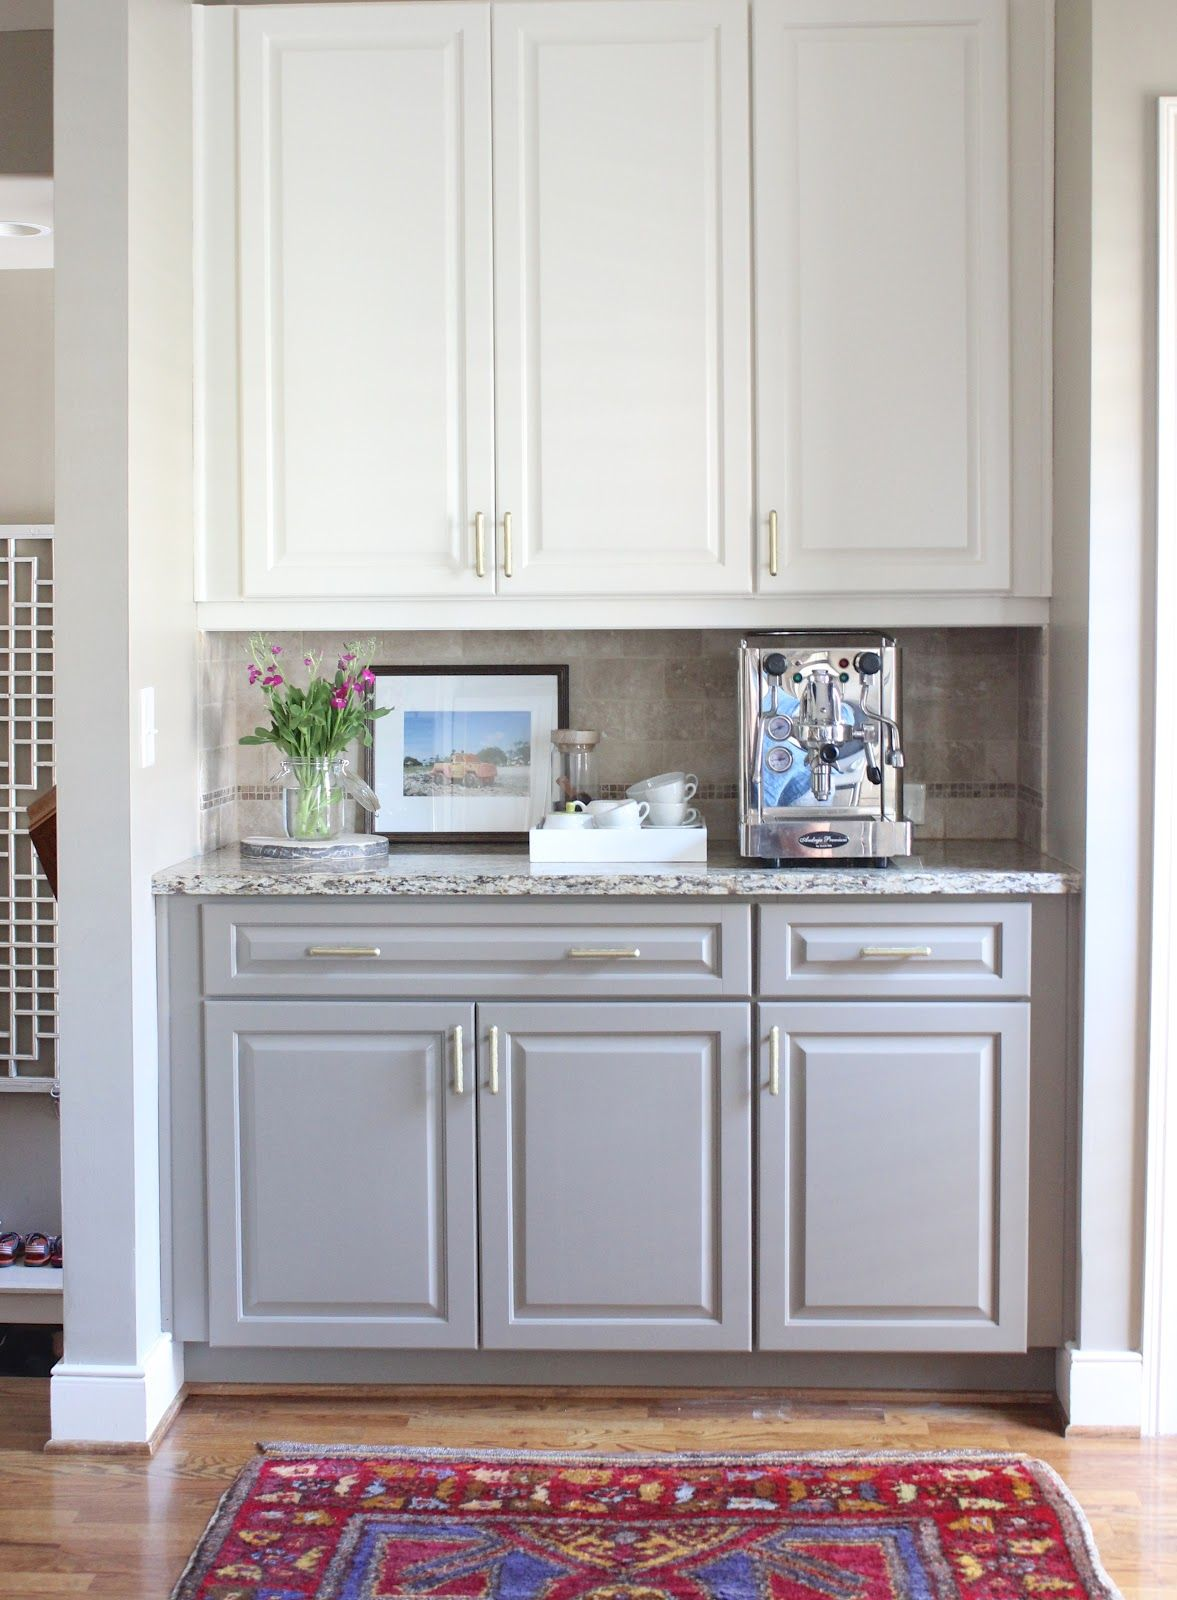 2 Tone Brown Kitchen Cabinets Two Toned Kitchen Cabinets White On Top Gray On